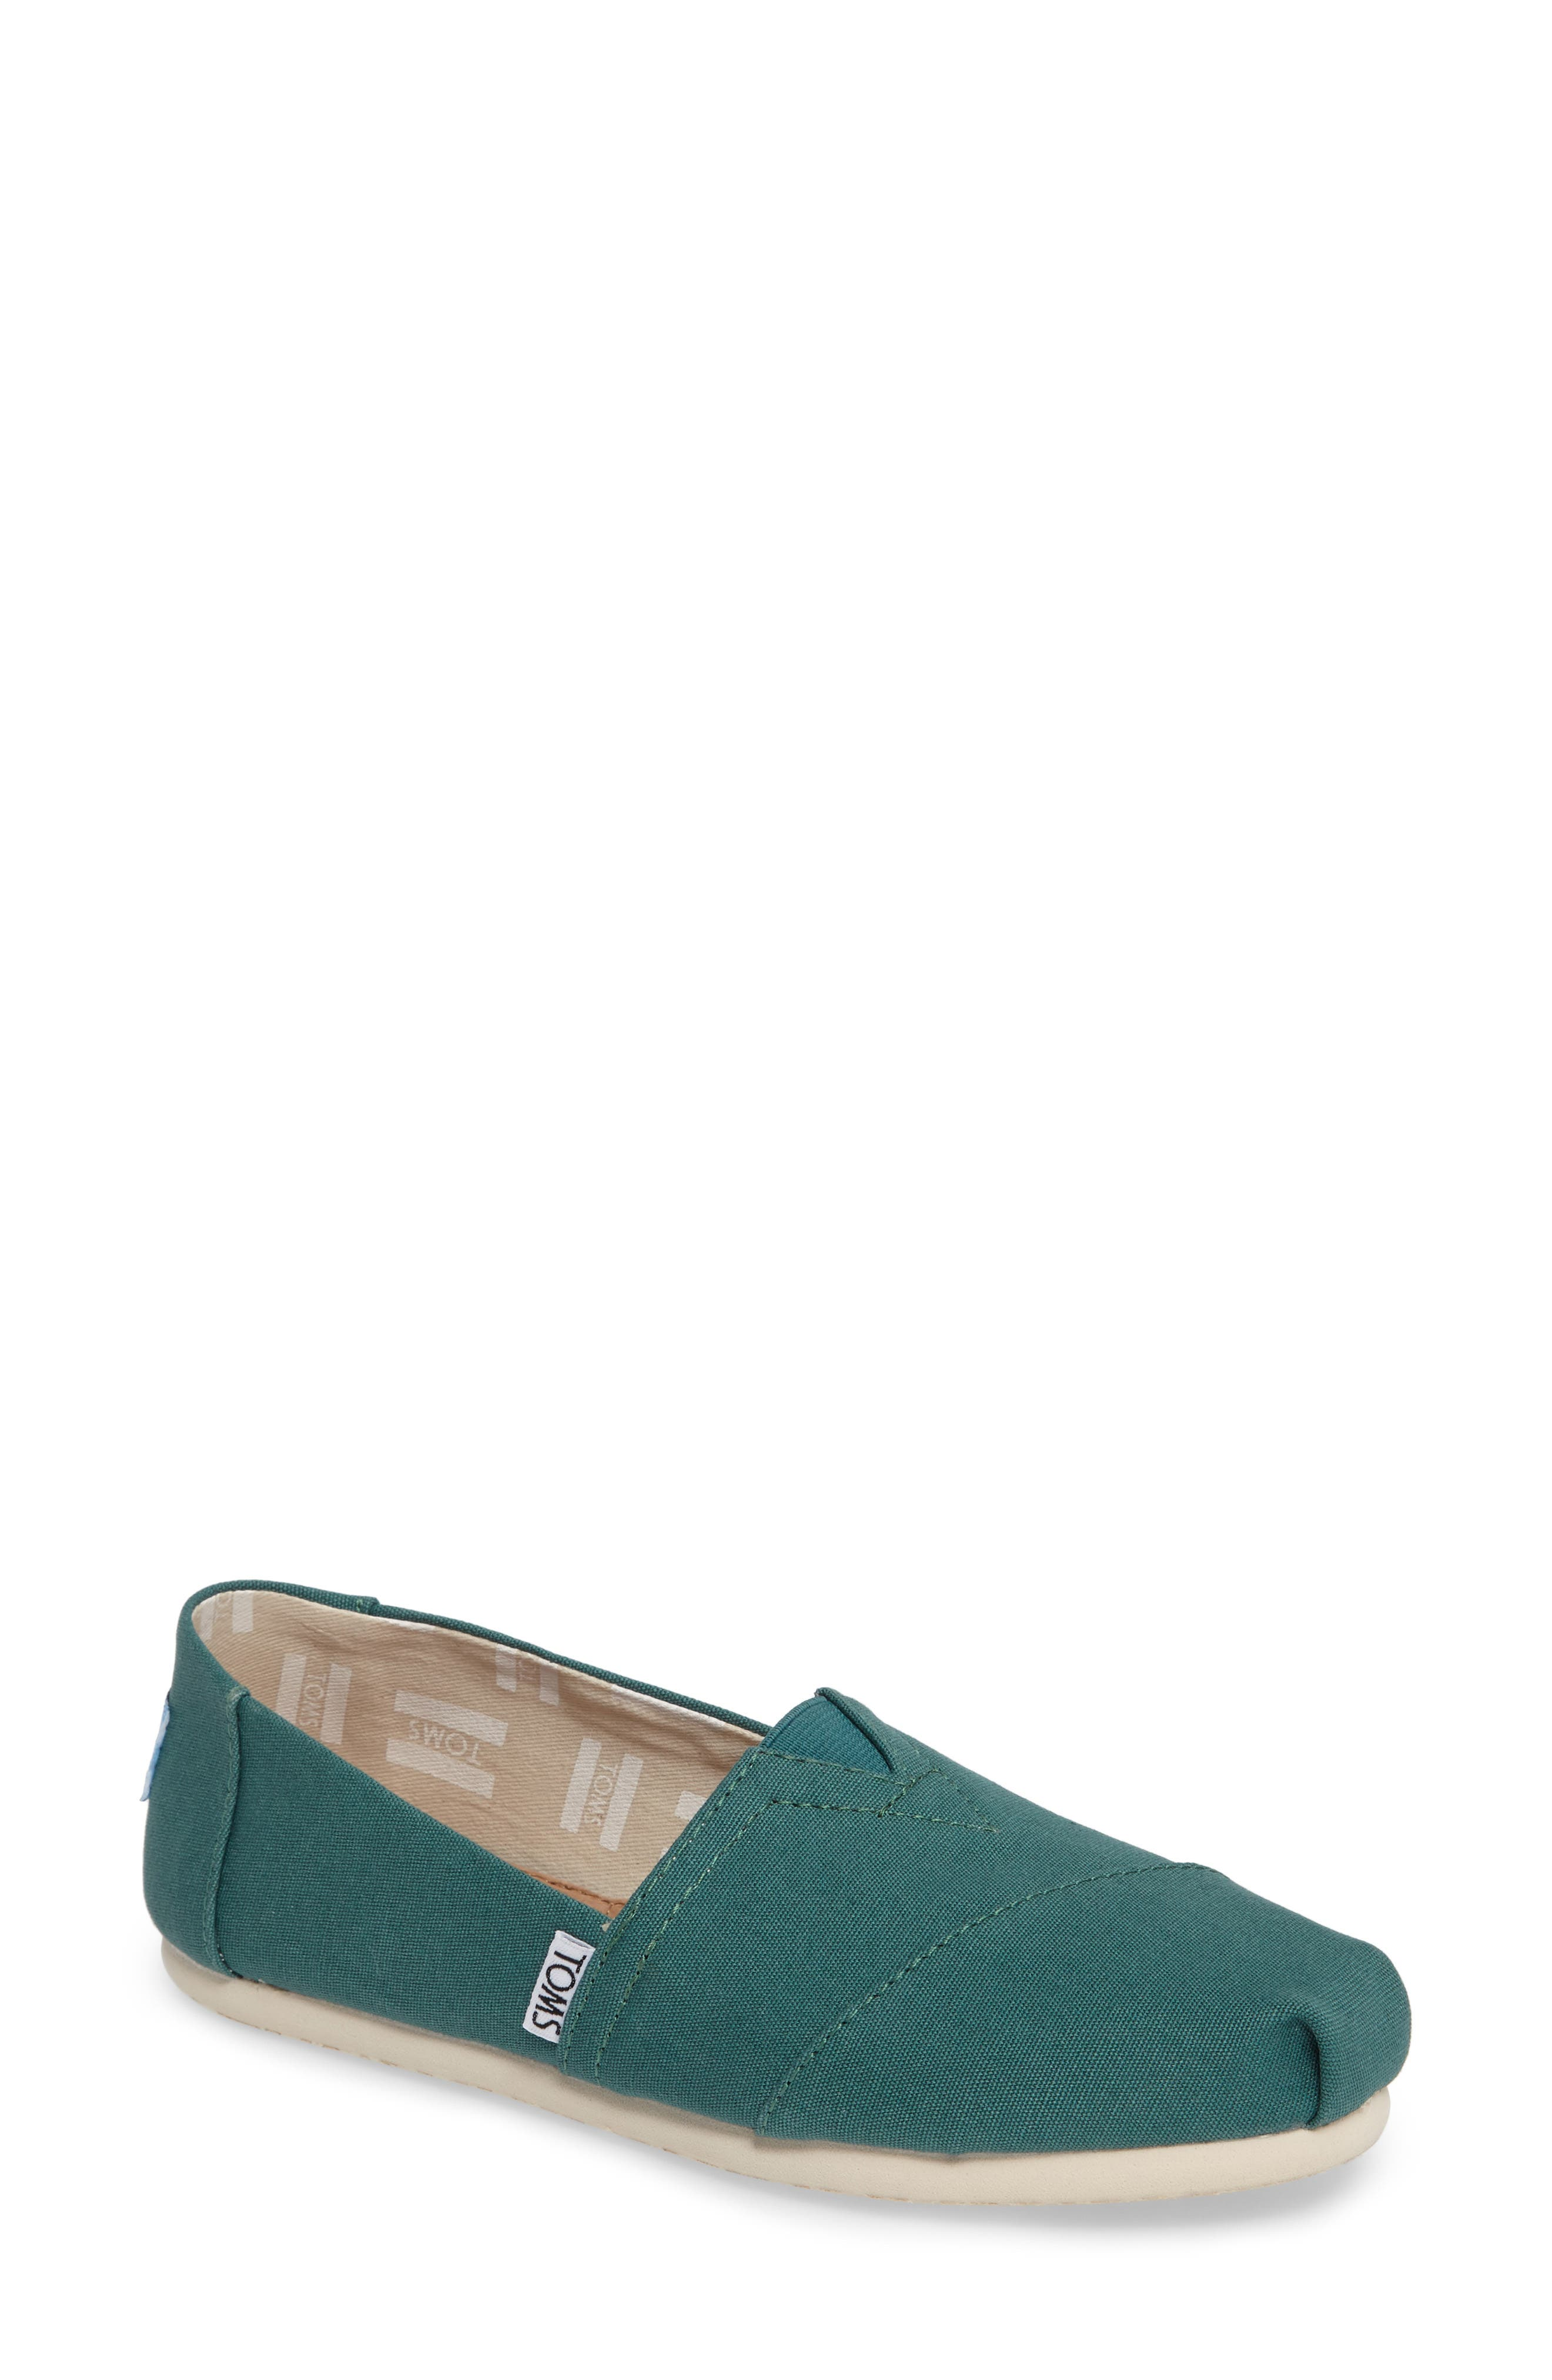 Main Image - TOMS Classic Canvas Slip-On (Women)